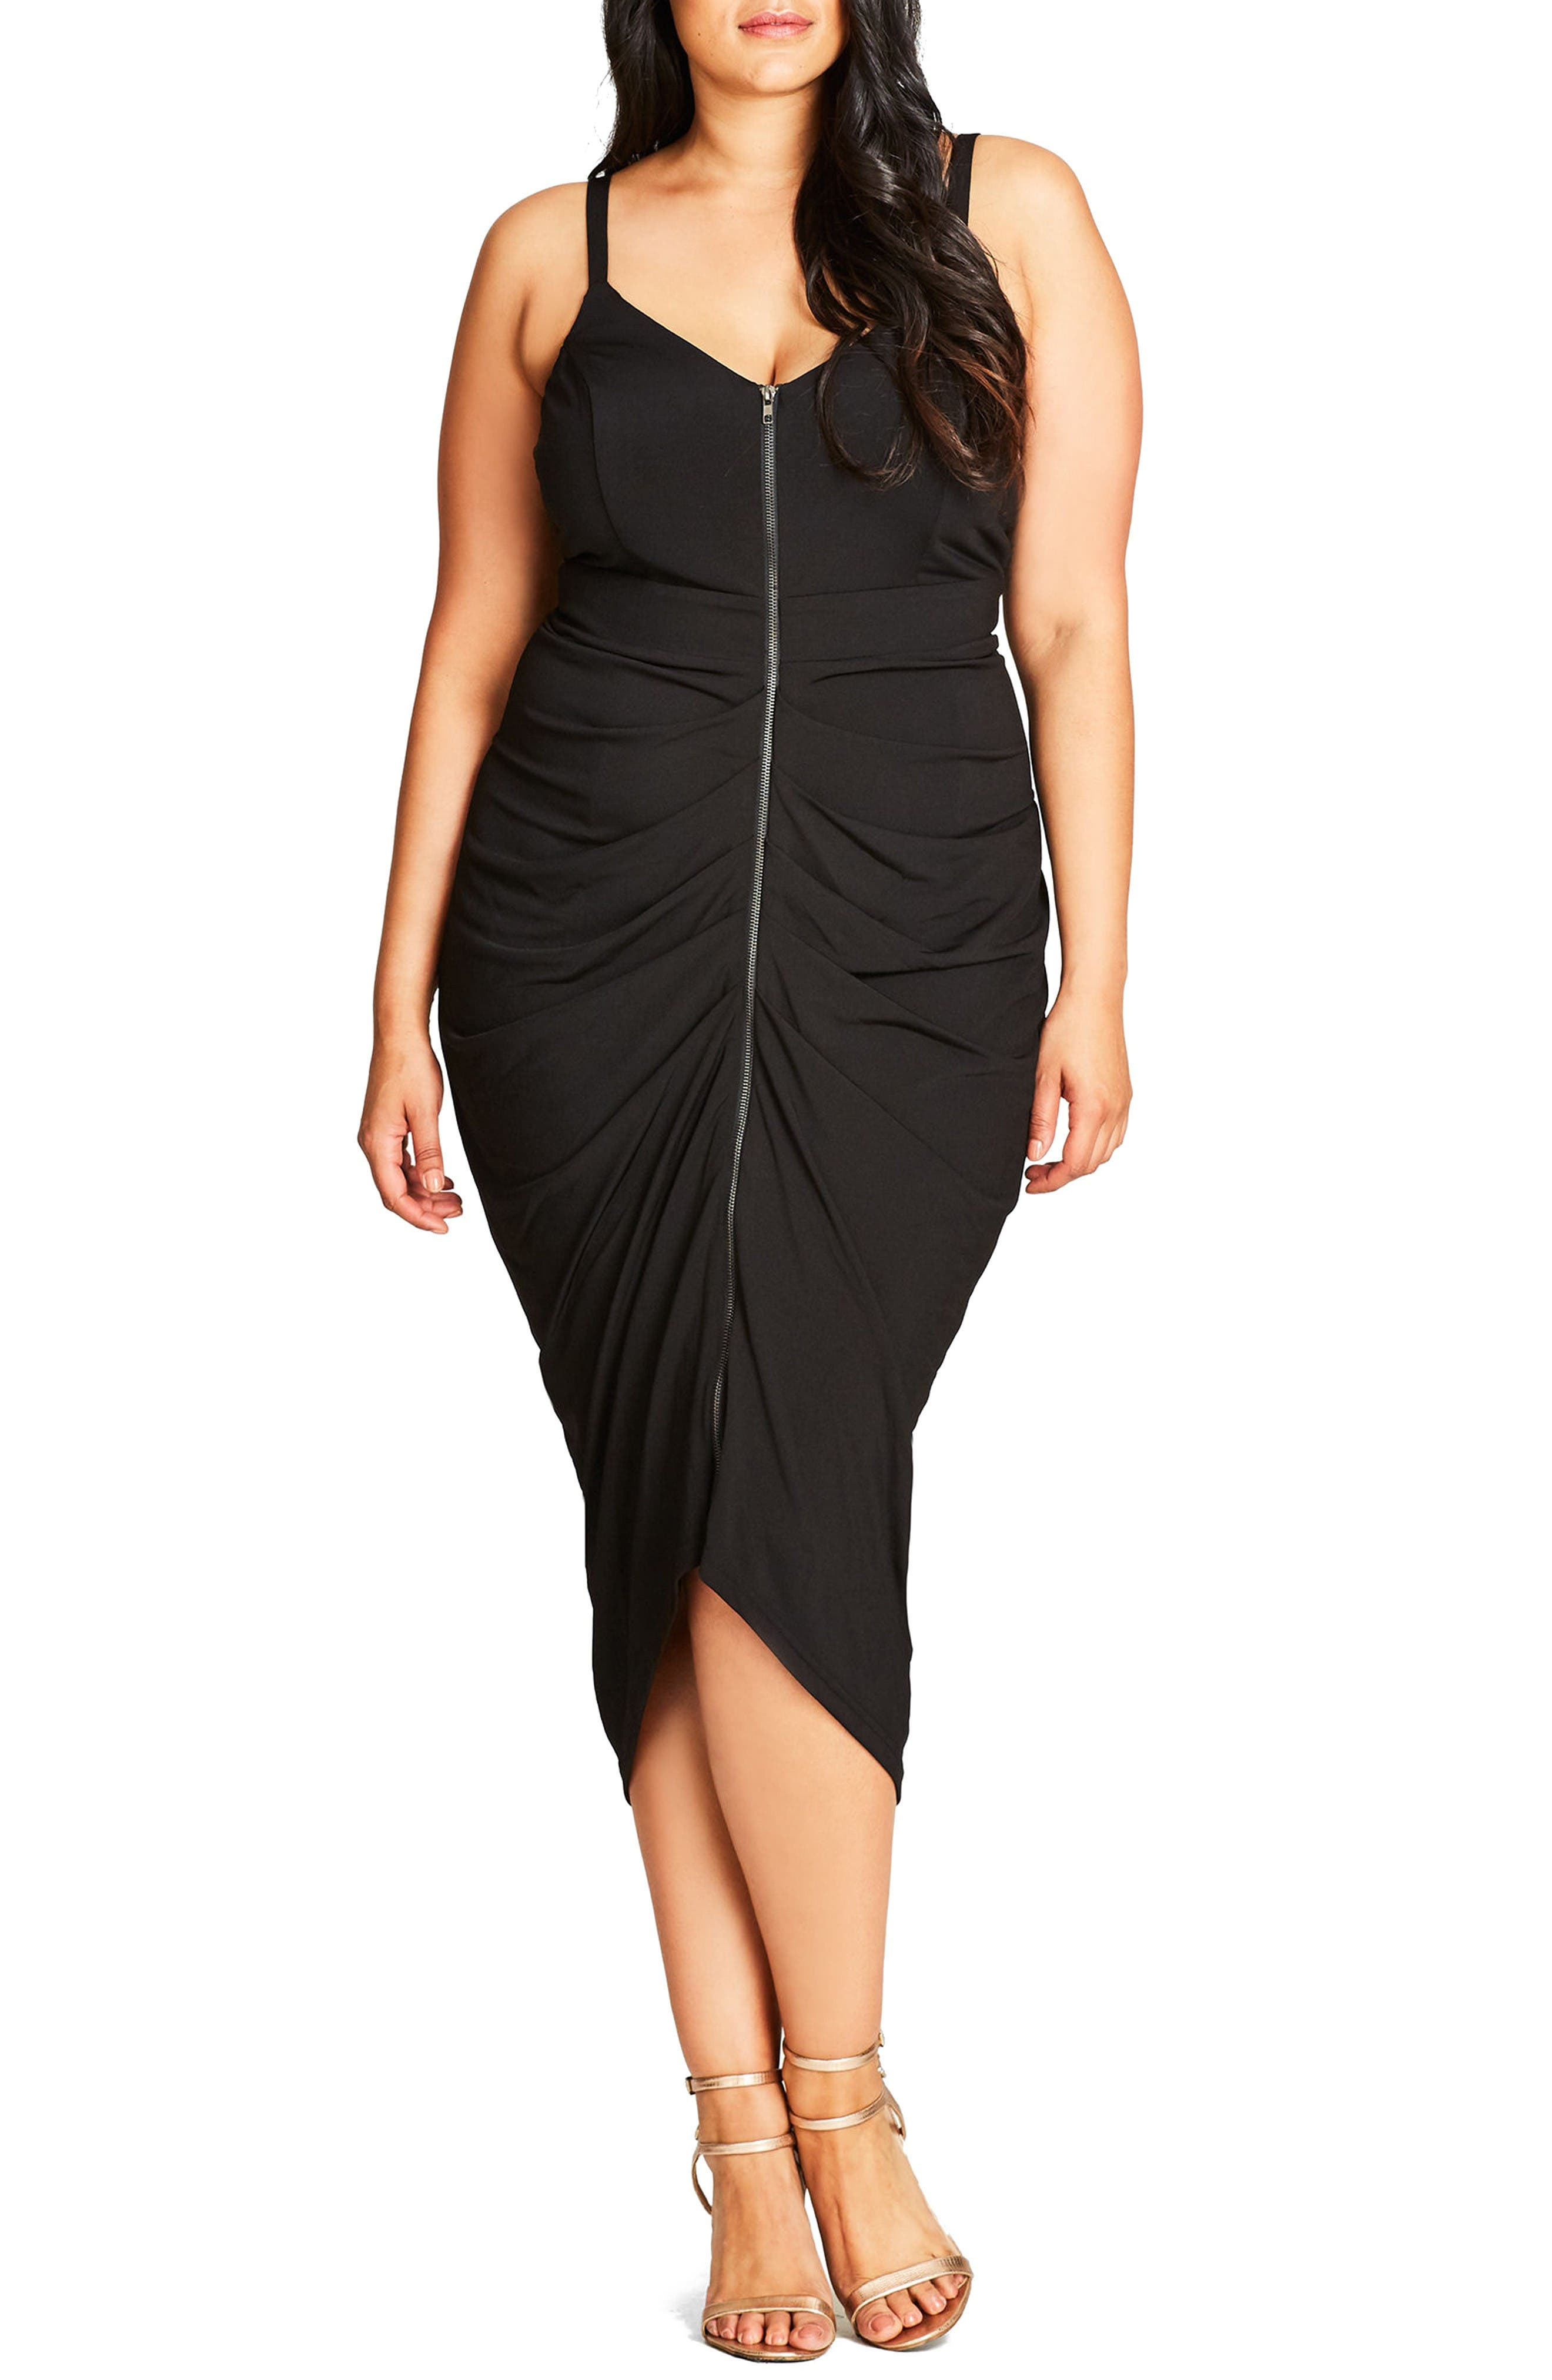 Alternate Image 1 Selected - City Chic Zip Front Body-Con Dress (Plus Size)